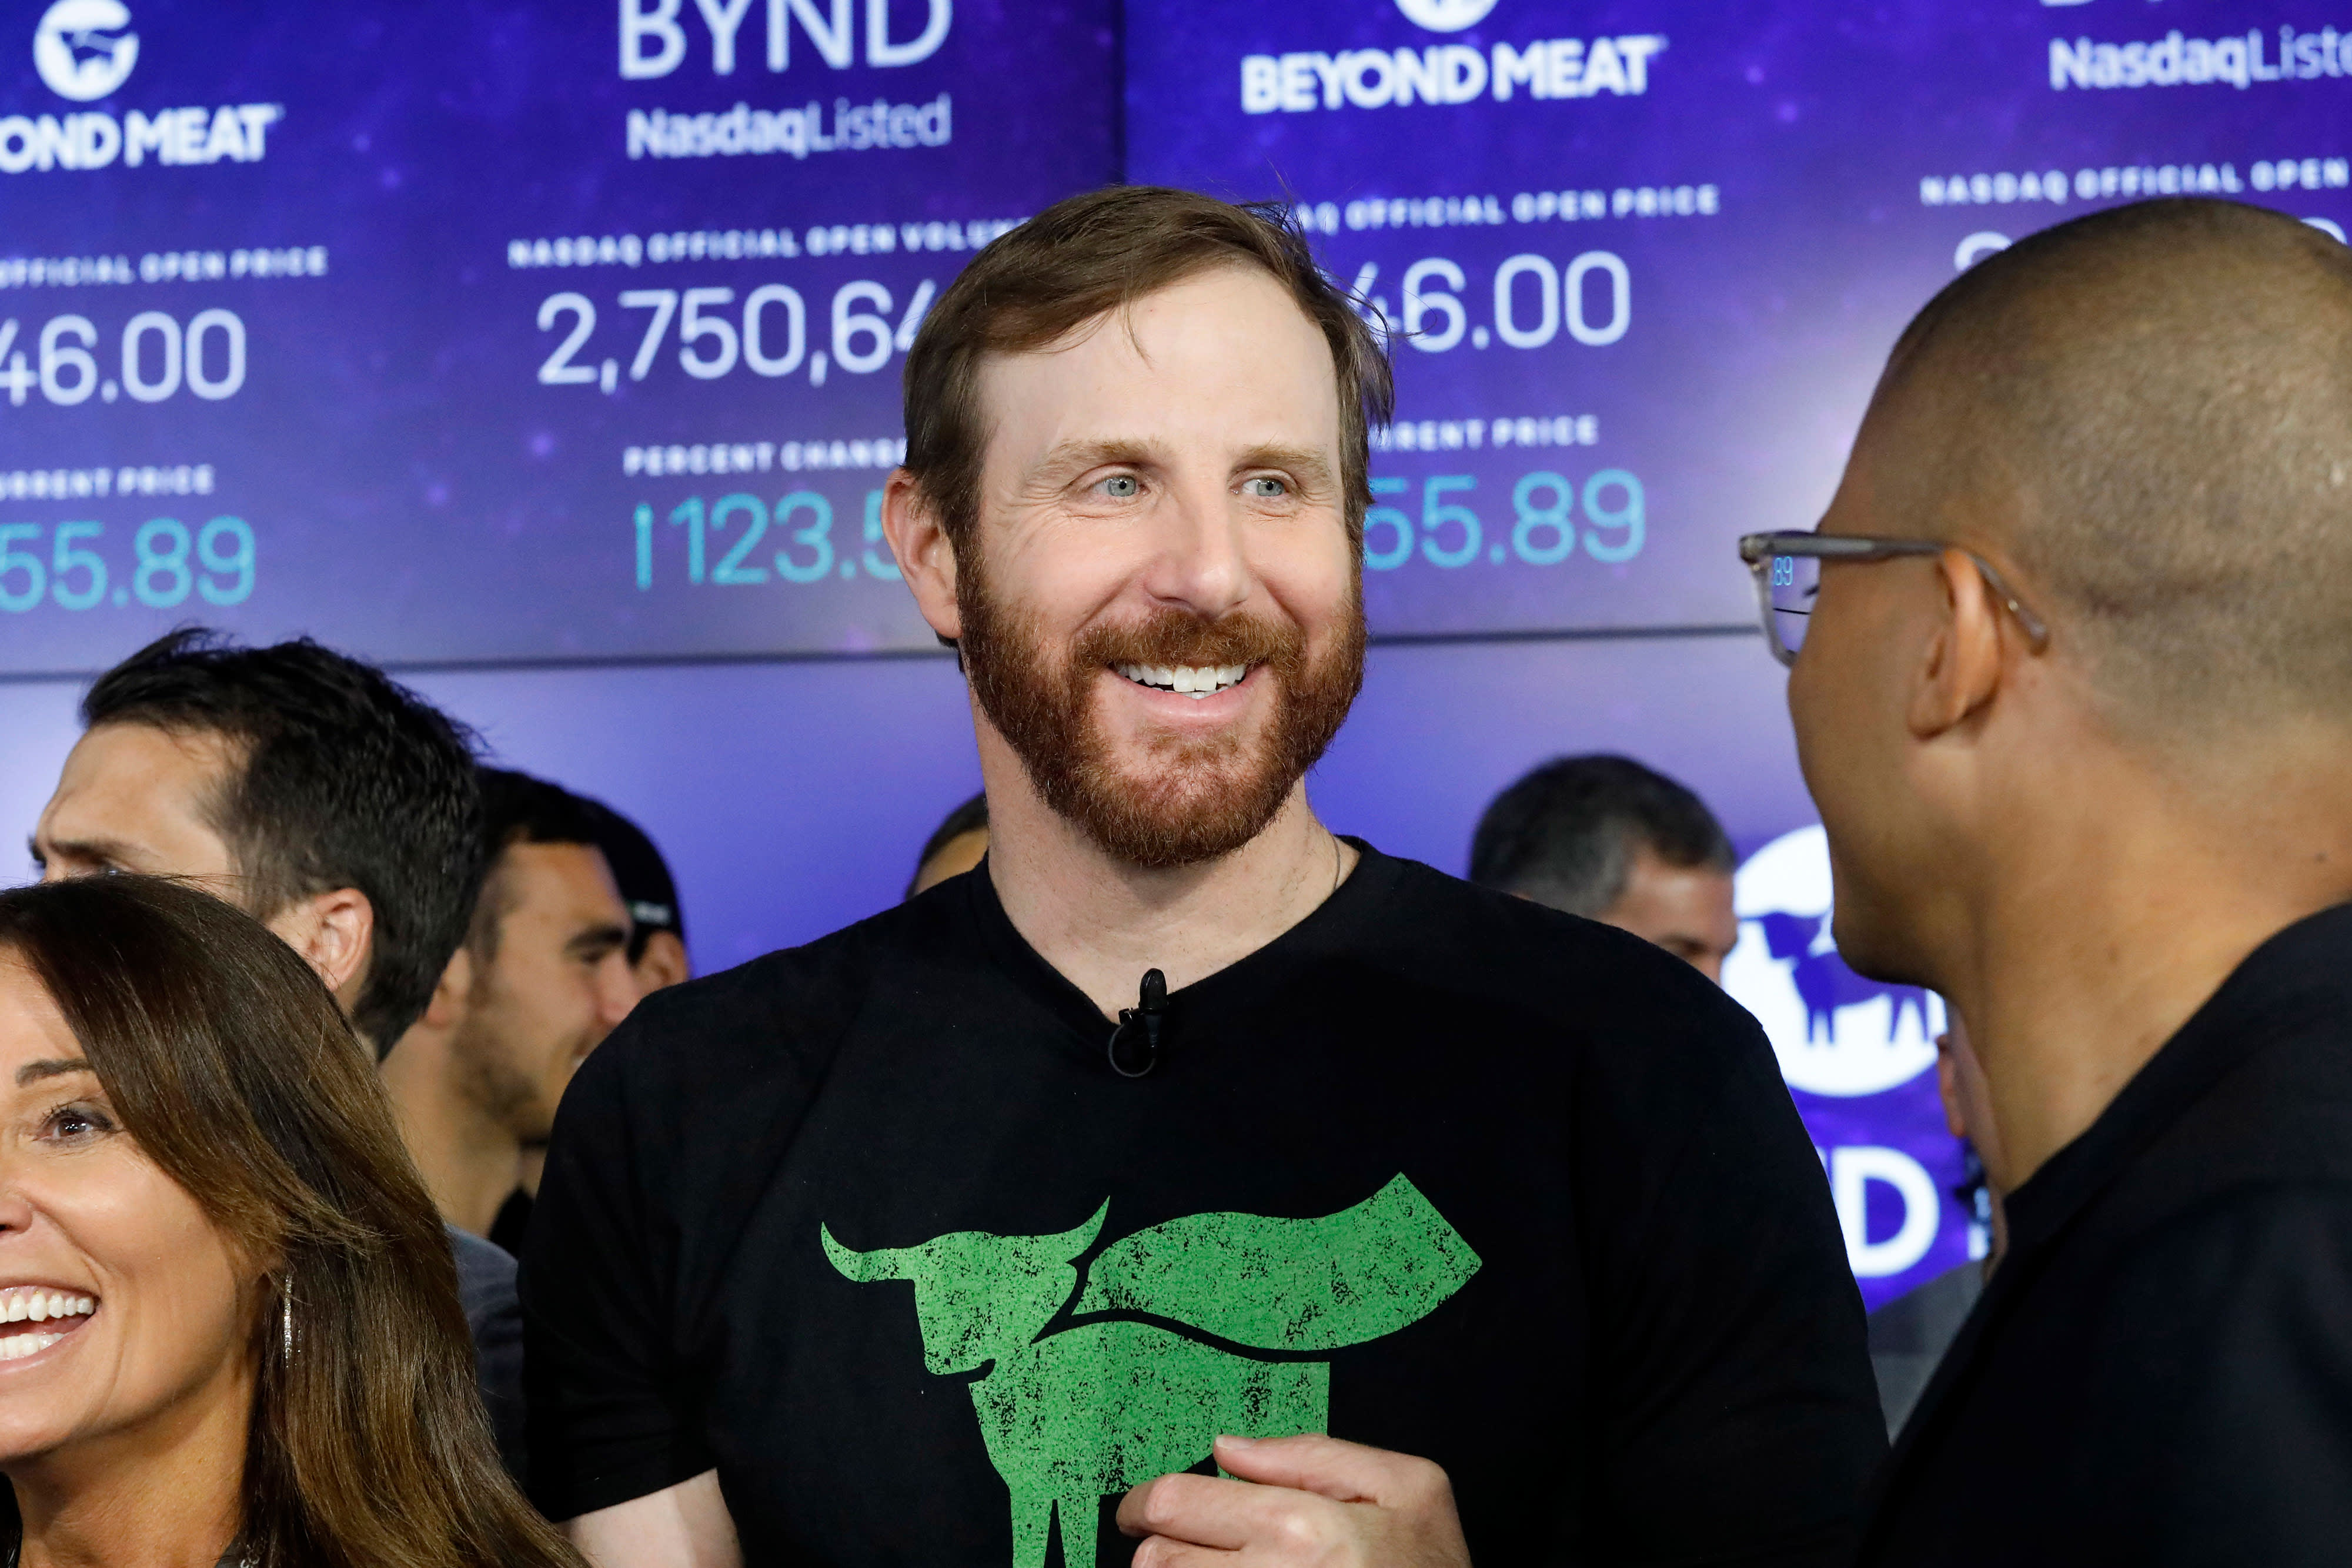 Beyond Meat short sellers lose more than $400 million as stock rockets higher